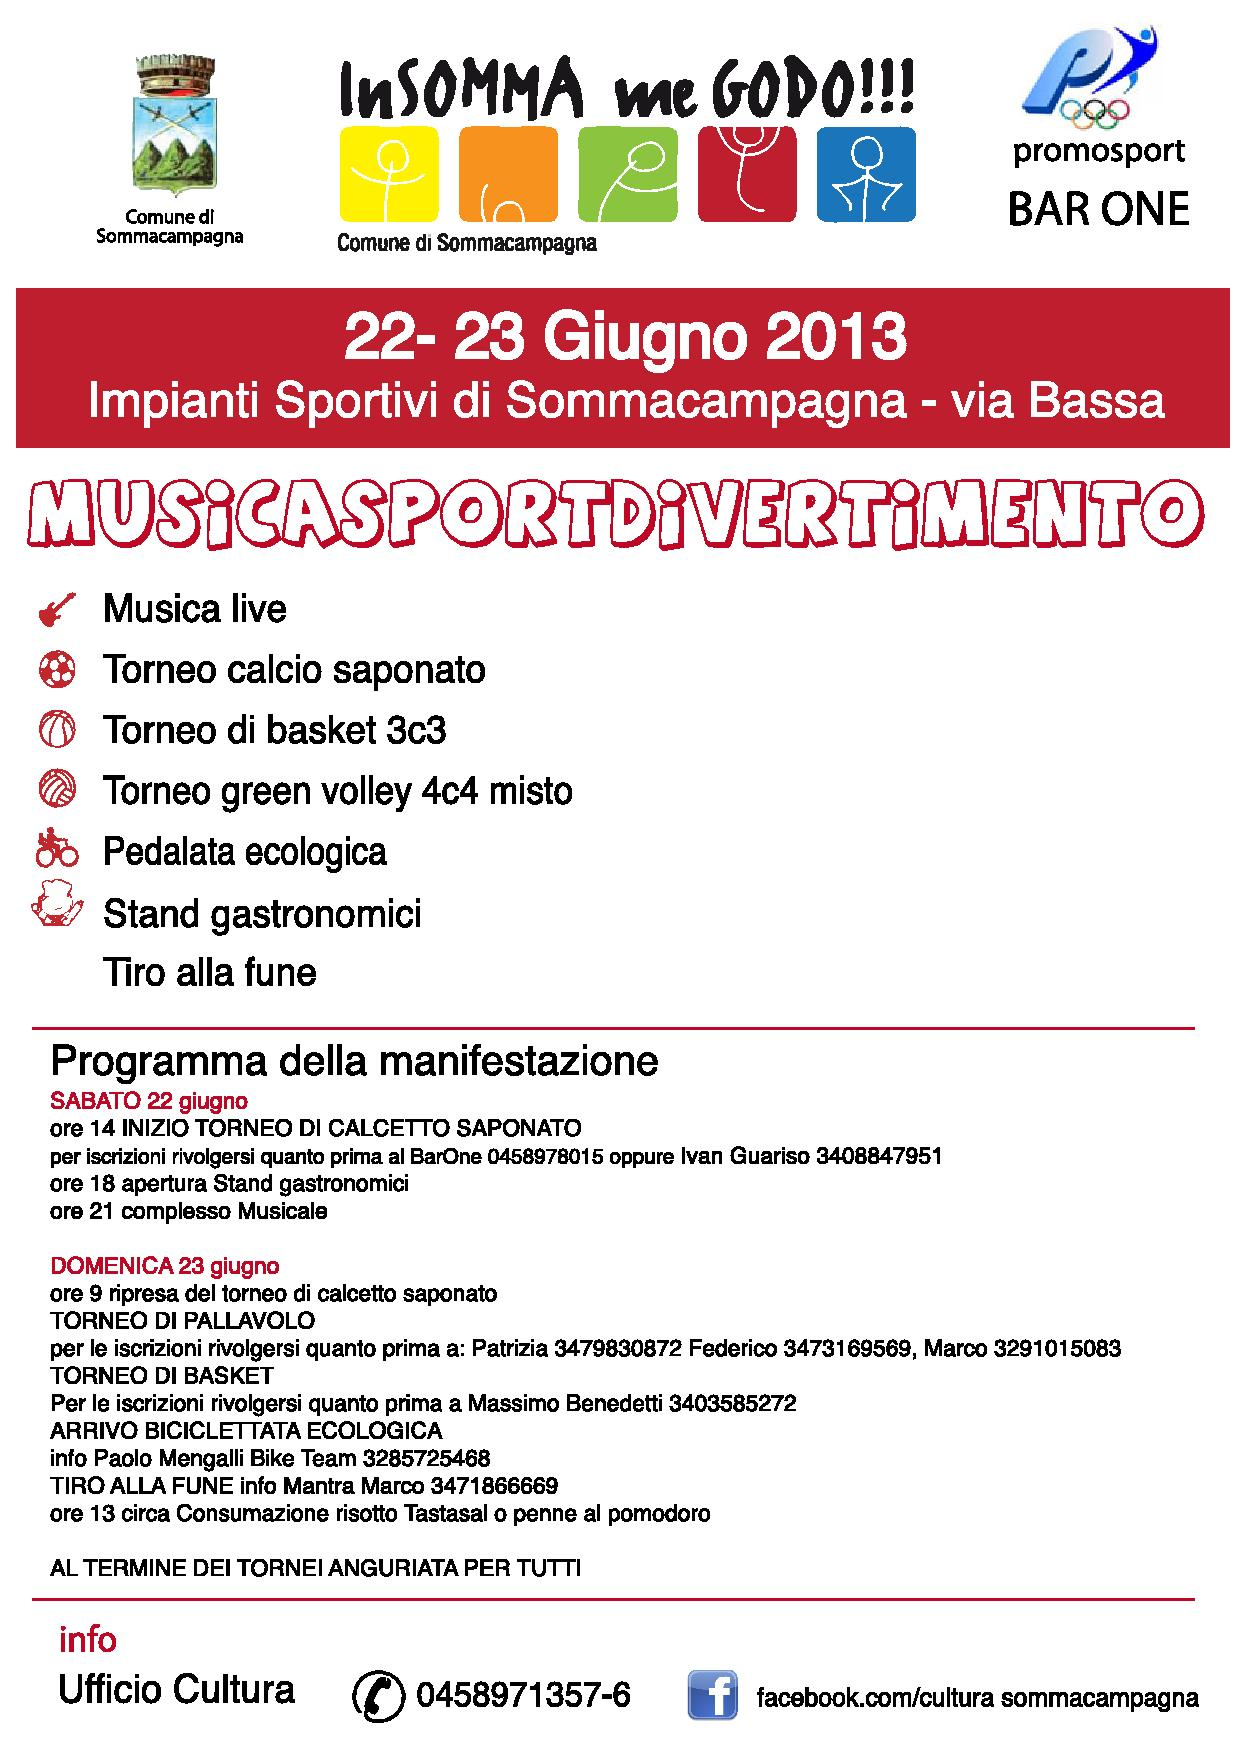 INSMMGD FRONTE 2013-page-001